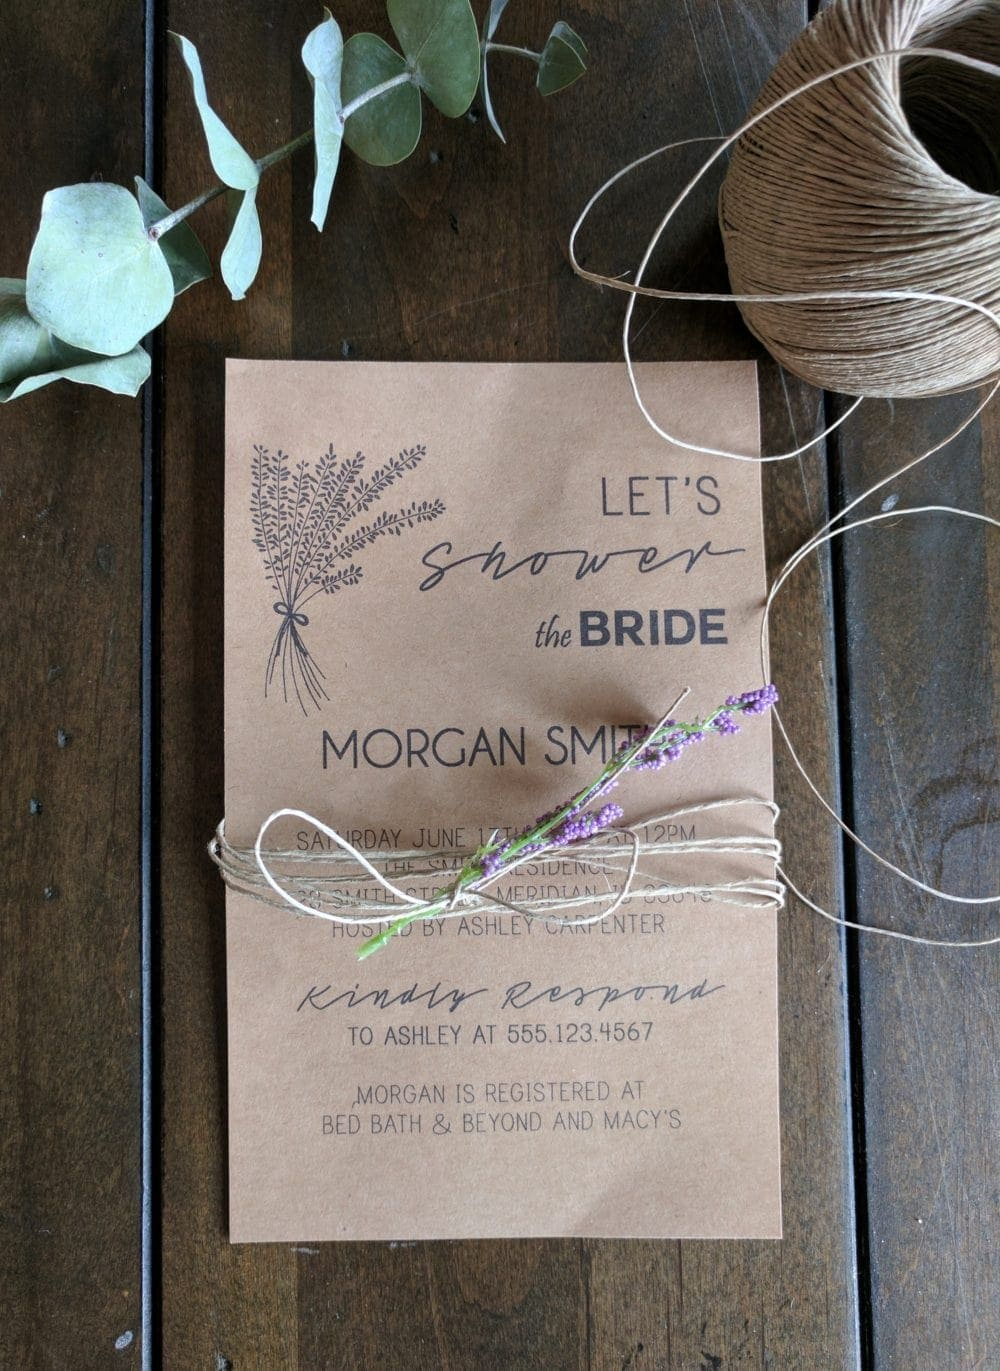 A DIY wedding Invitation sitting on a wood table wrapped in twine with lavender